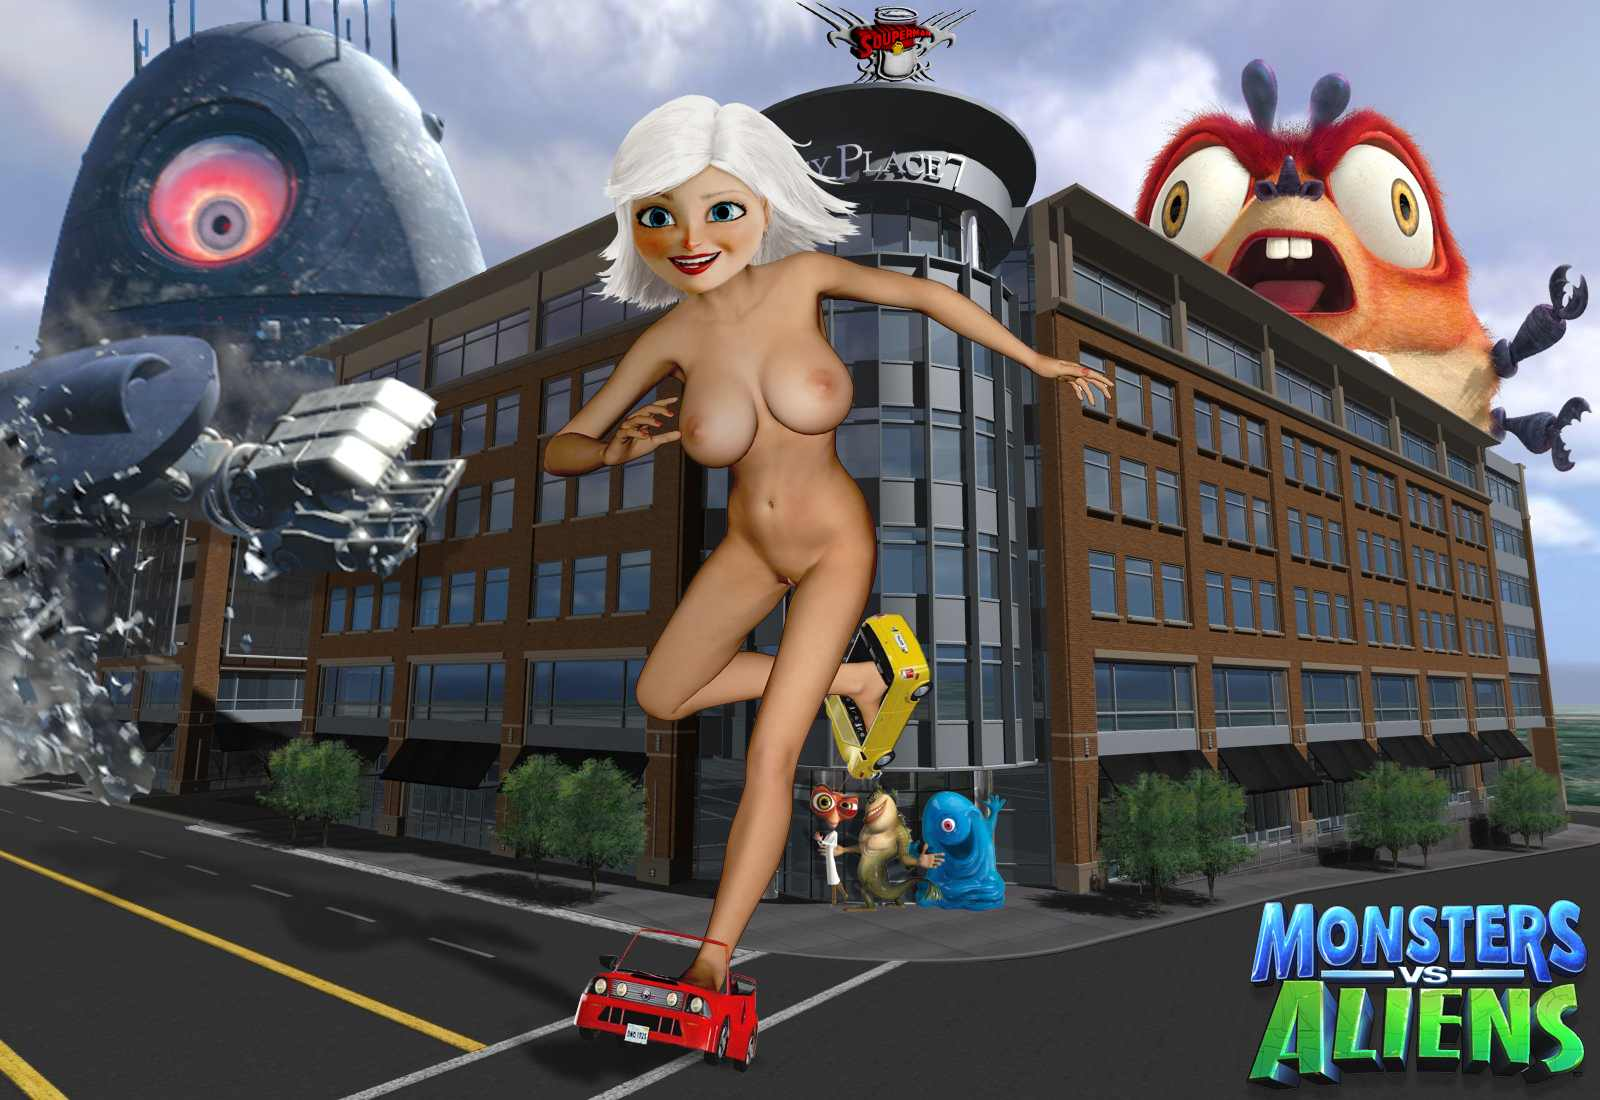 Monsters vs aliens susan naked pussy hentay picture